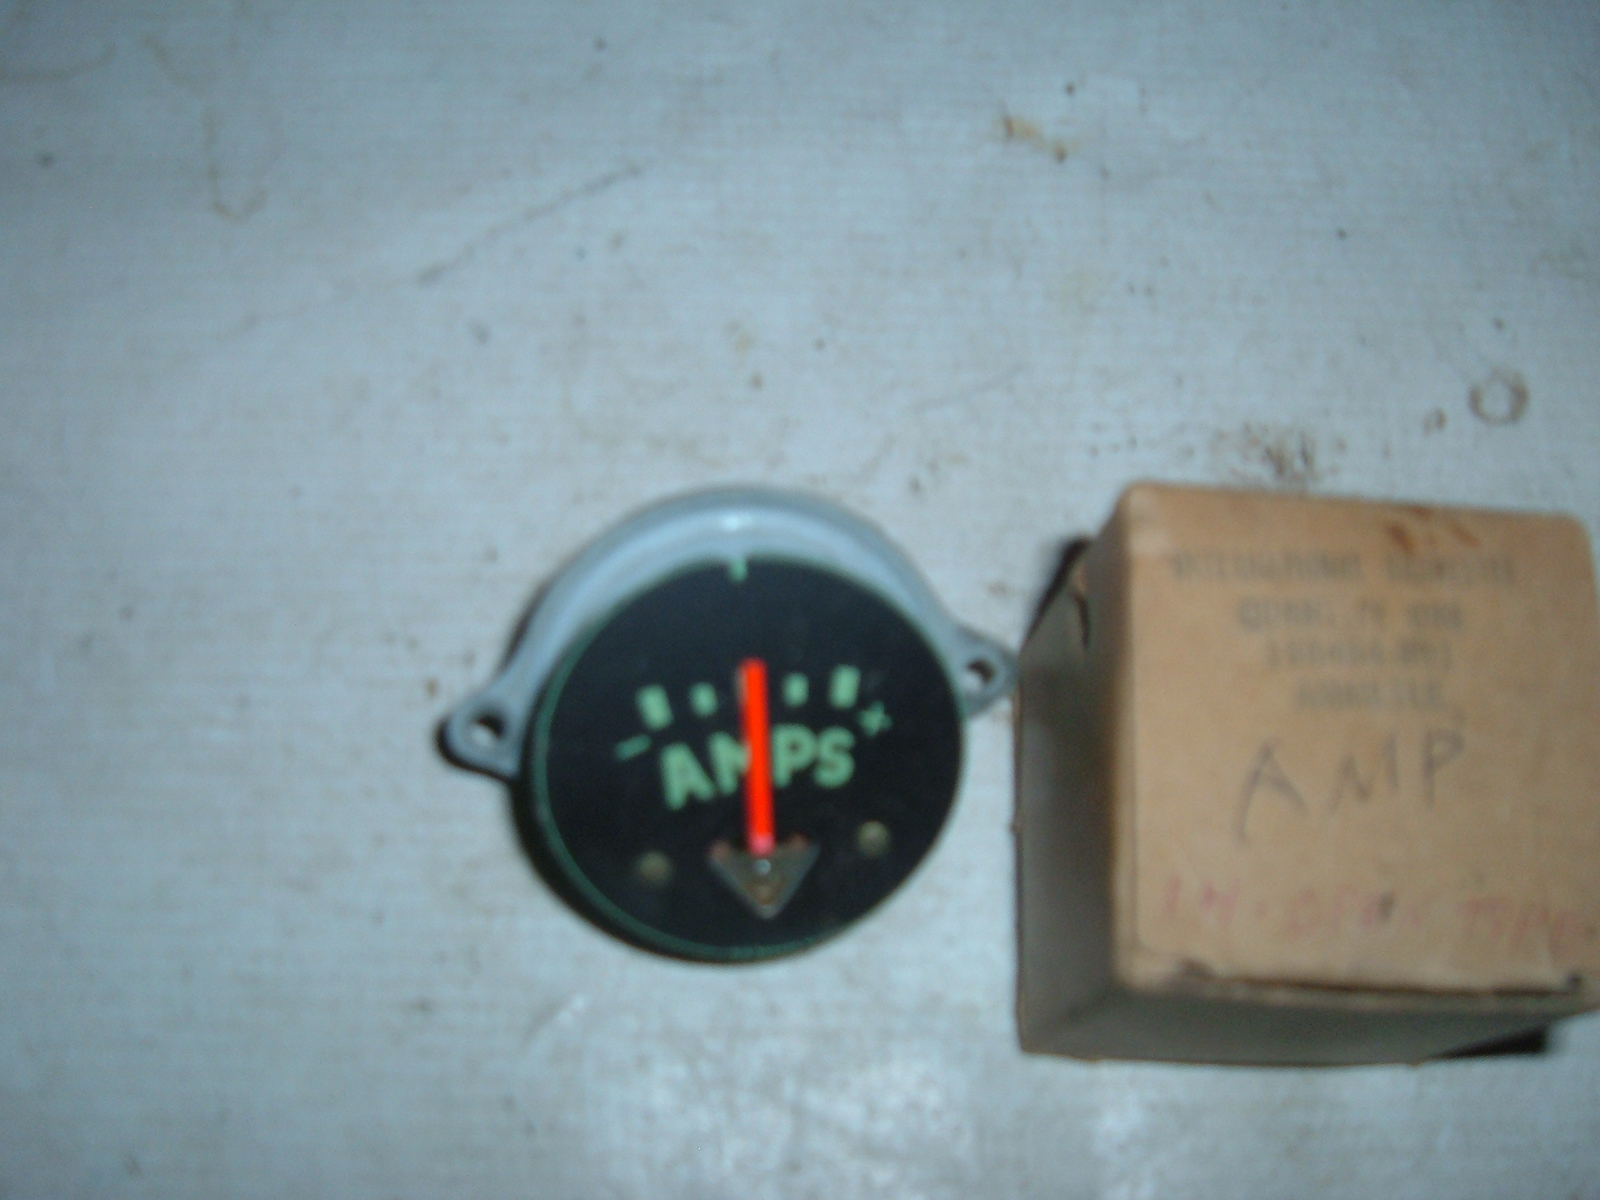 1950 51 52 53 54 55 56 57 international truck ammeter gauge nos 186464-r91 (z 186464-r91)